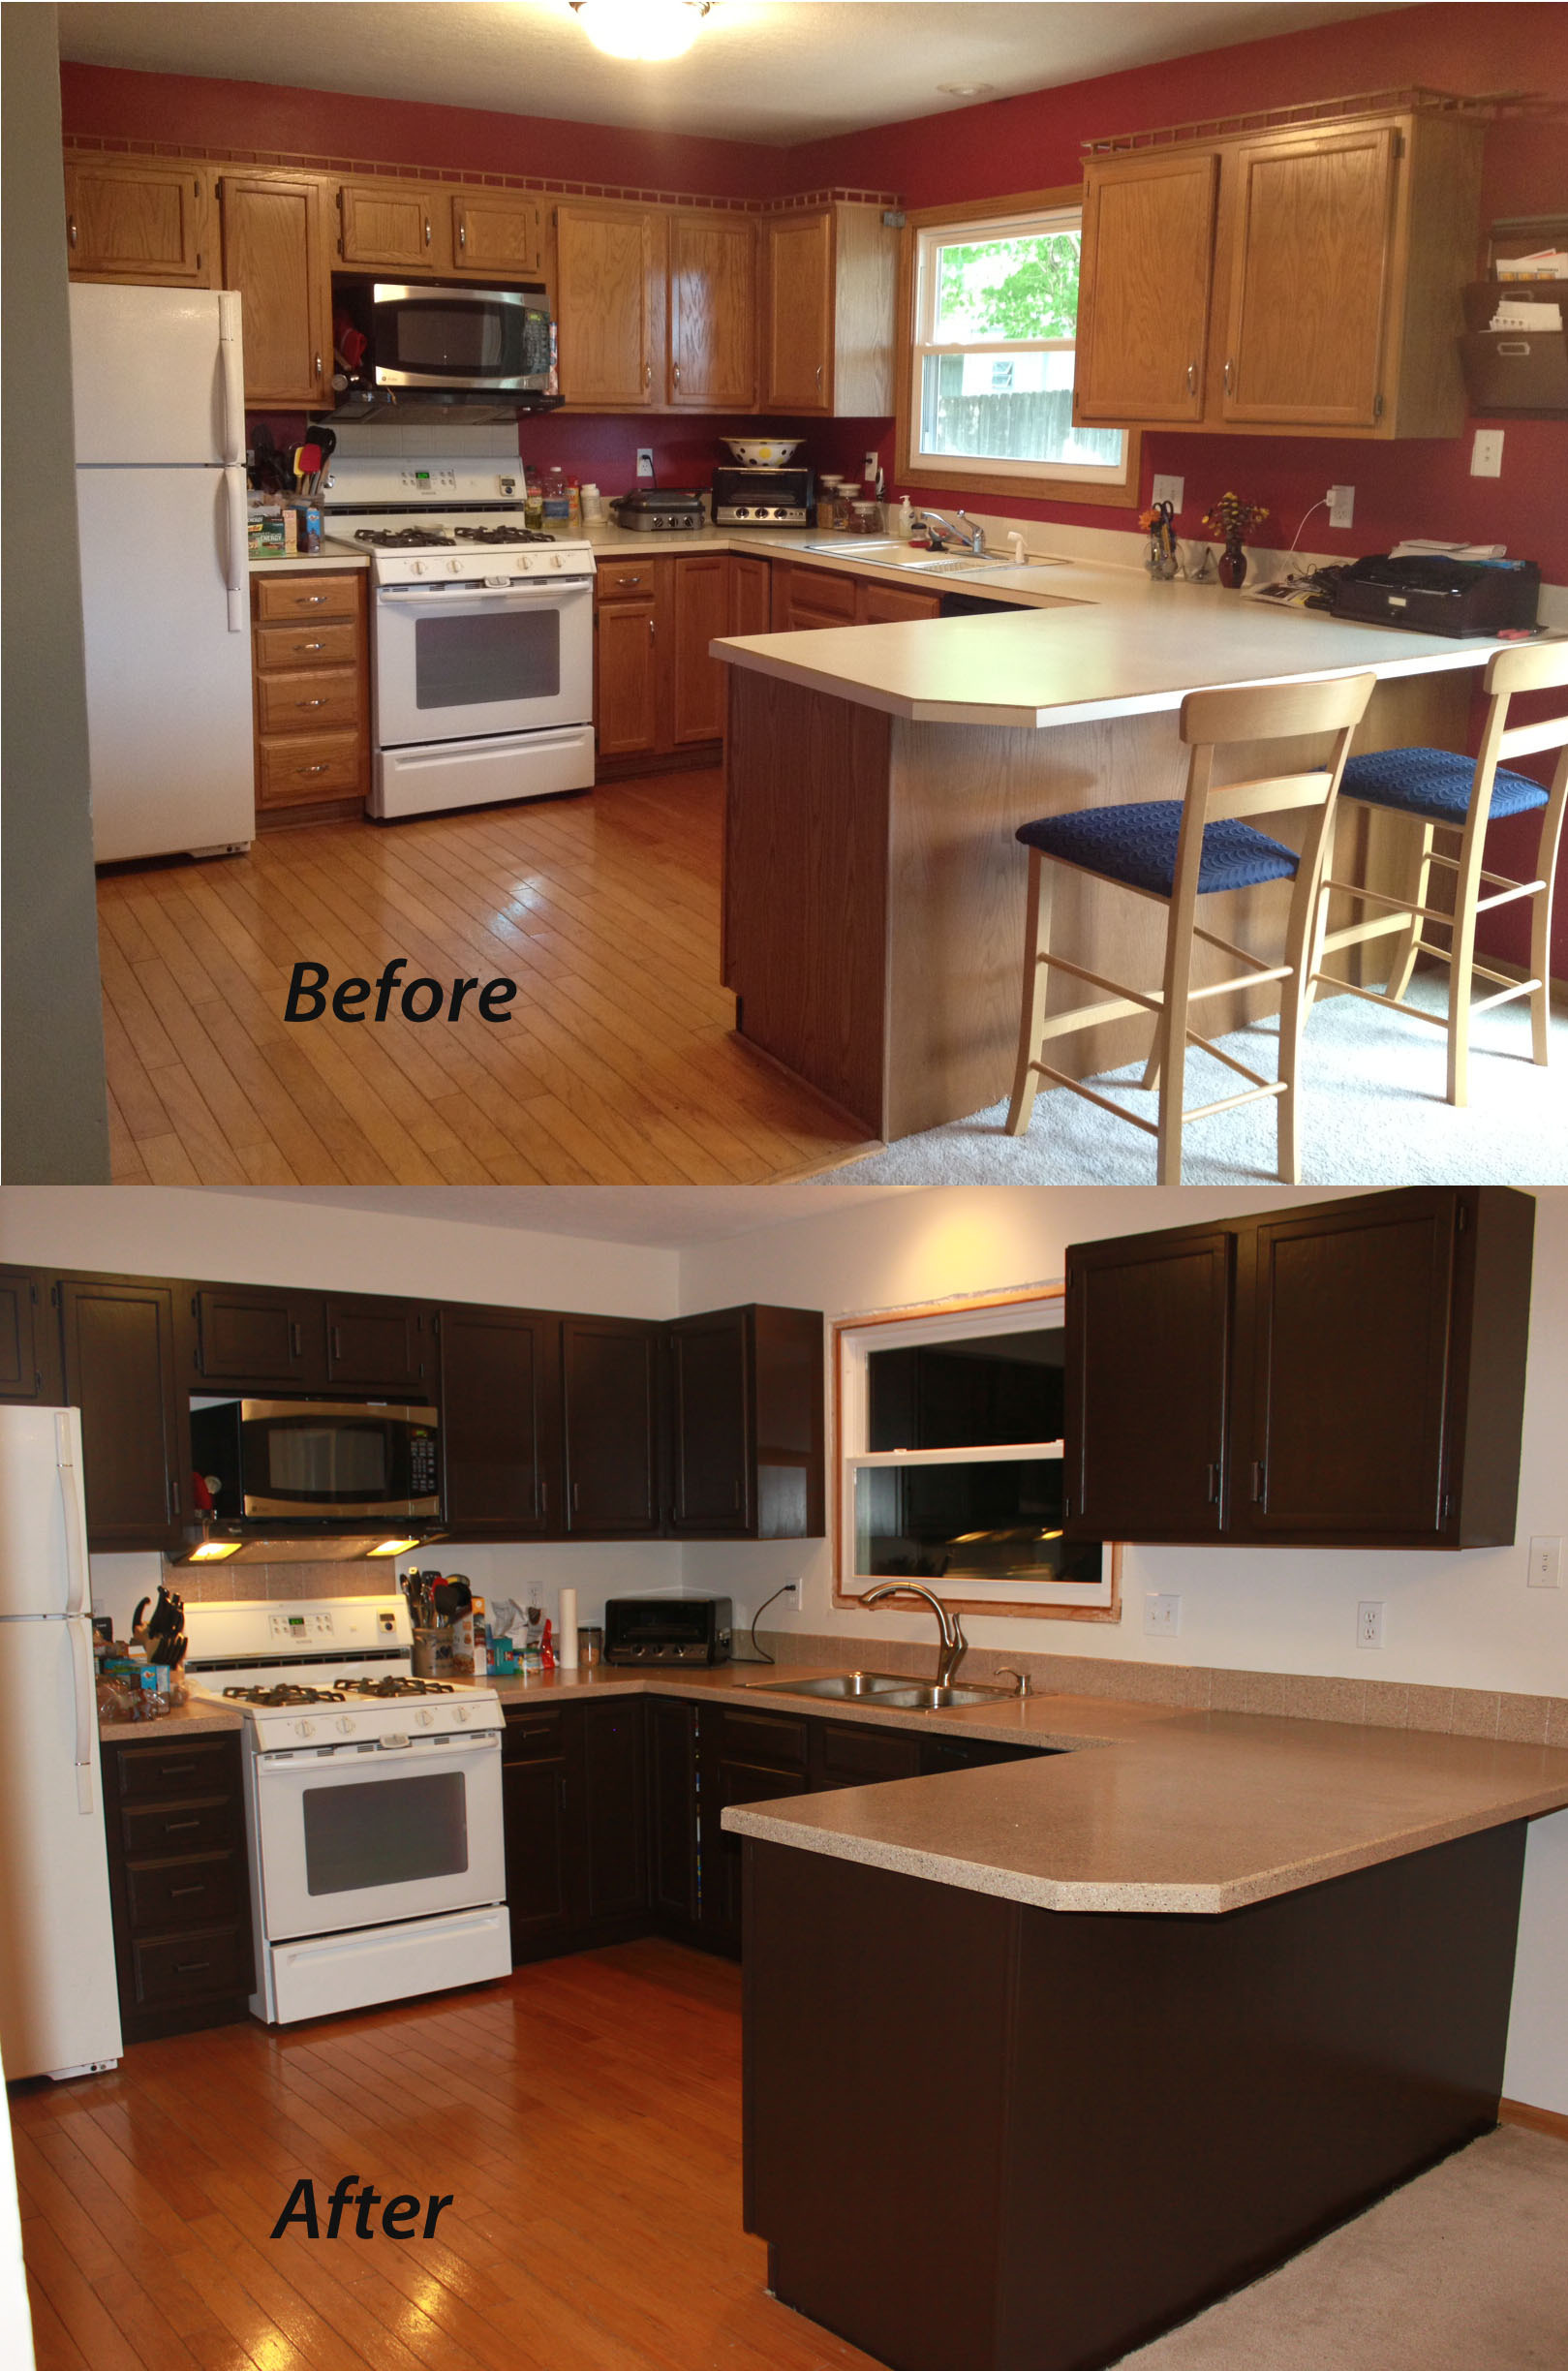 painting mobile home kitchen cabinets sg41 roc munity painting mobile home kitchen cabinets l b9a7ad844a